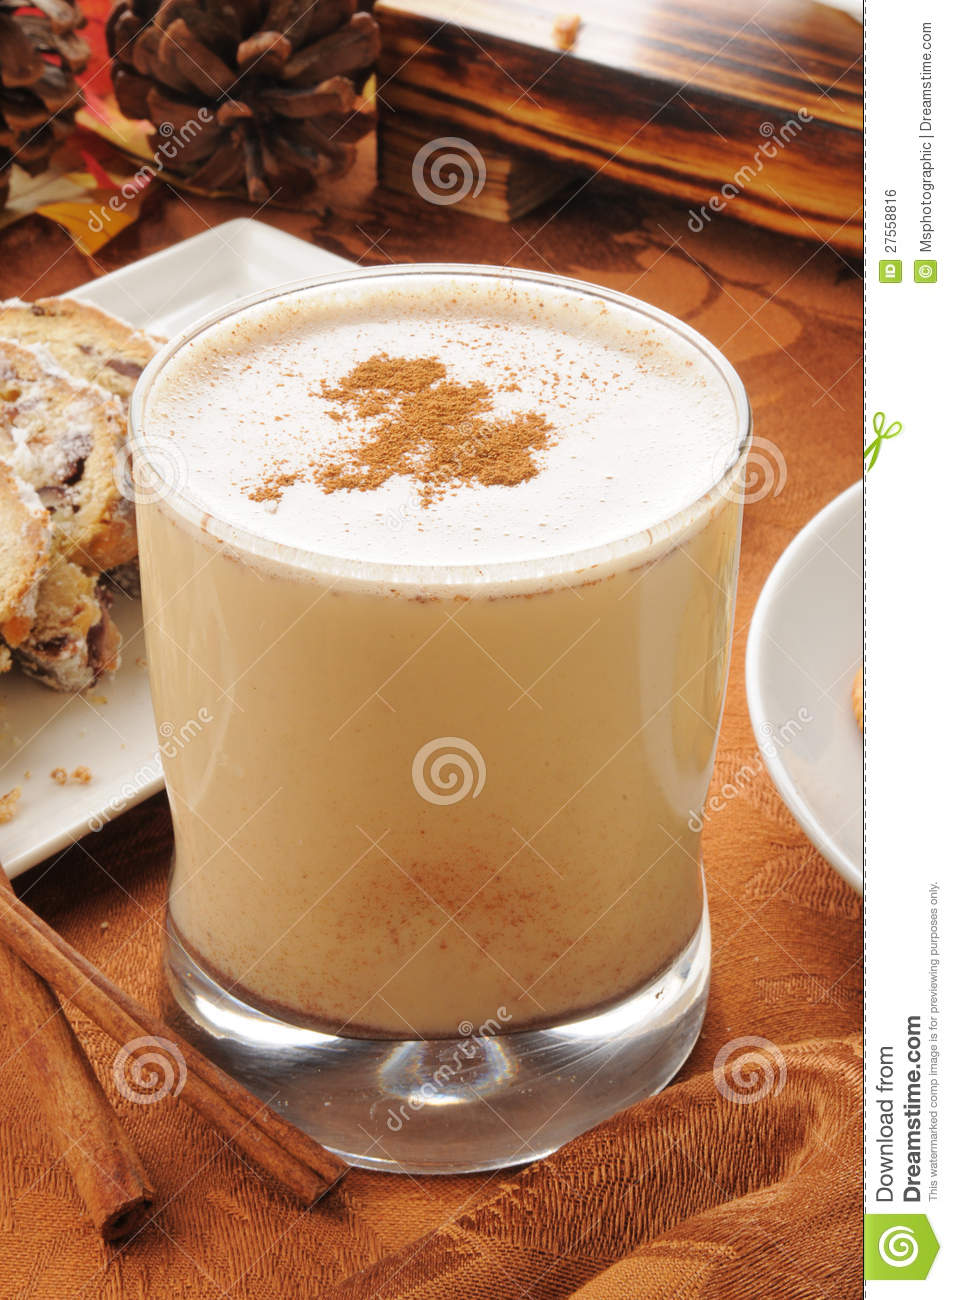 Egg Nog With Cinnamon And Nutmet Royalty Free Stock Image ...